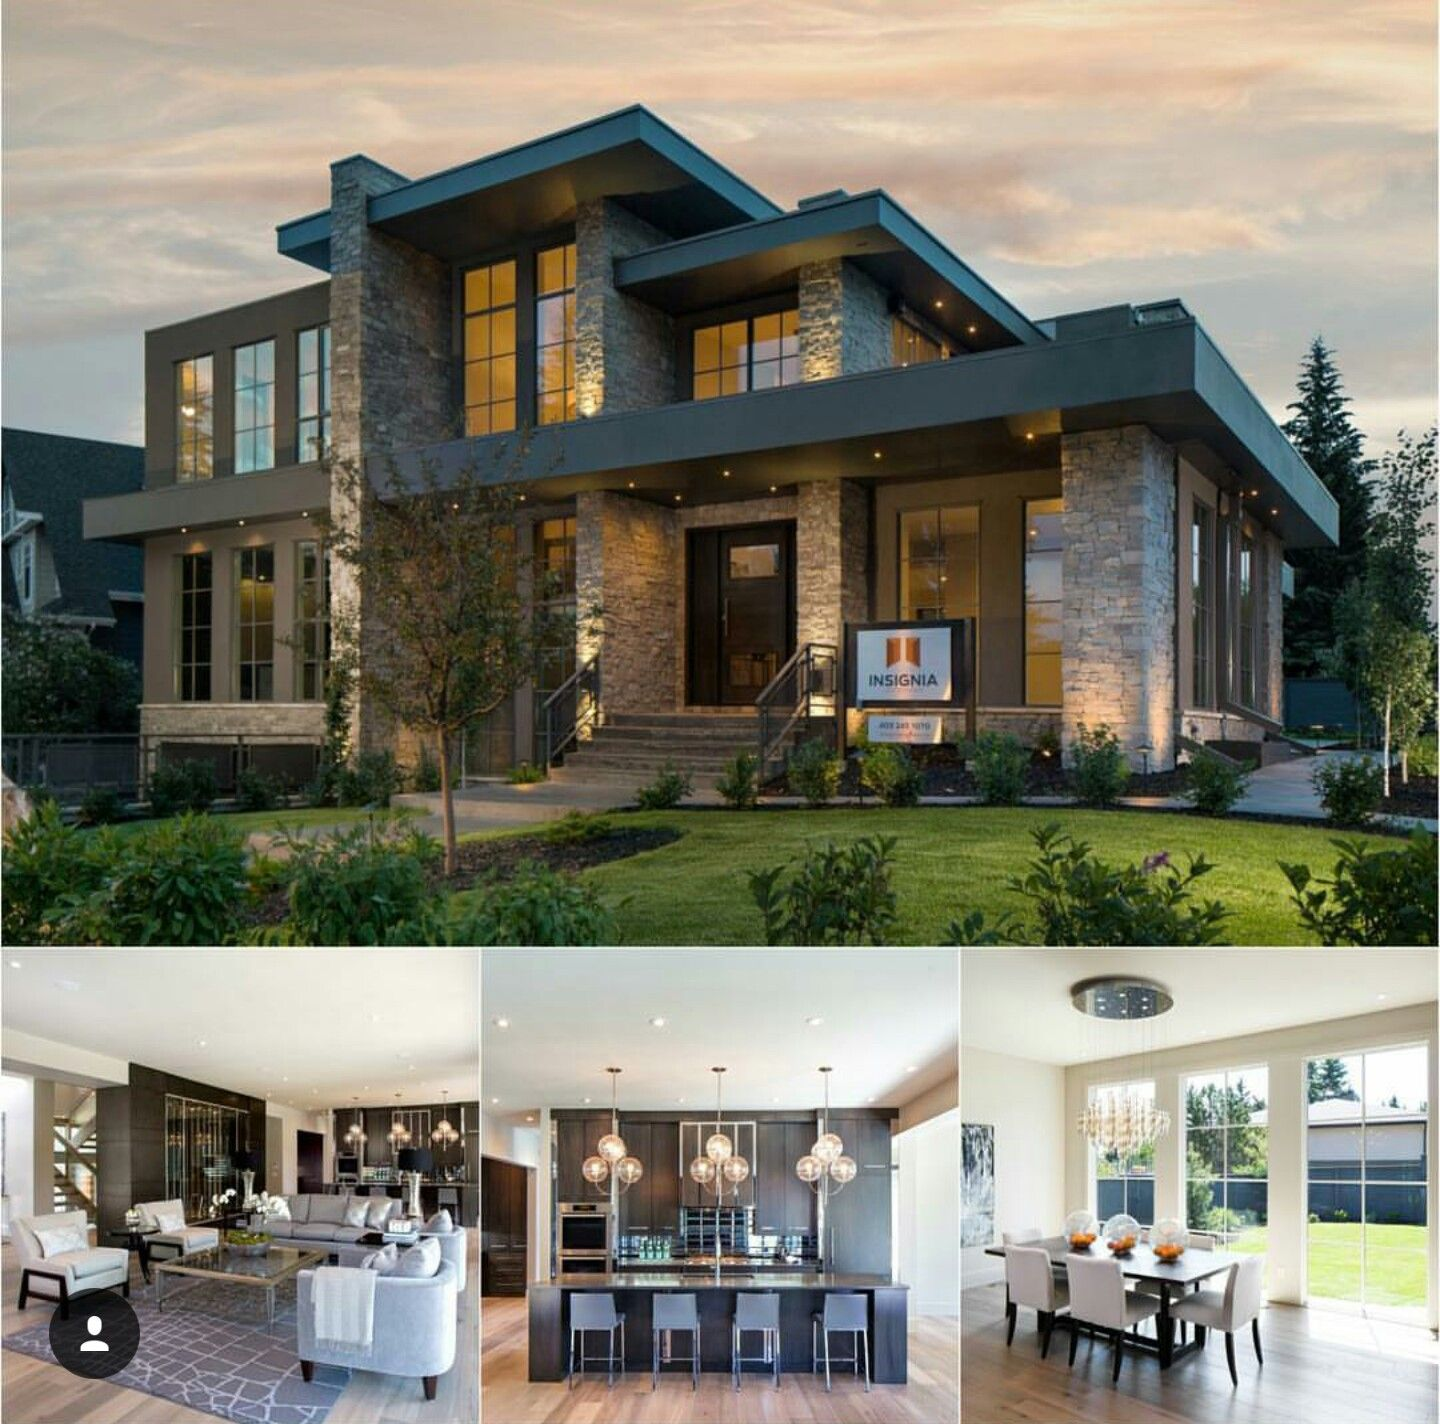 Simply gorgeous building dream house 2017 pinterest for Modern house 49